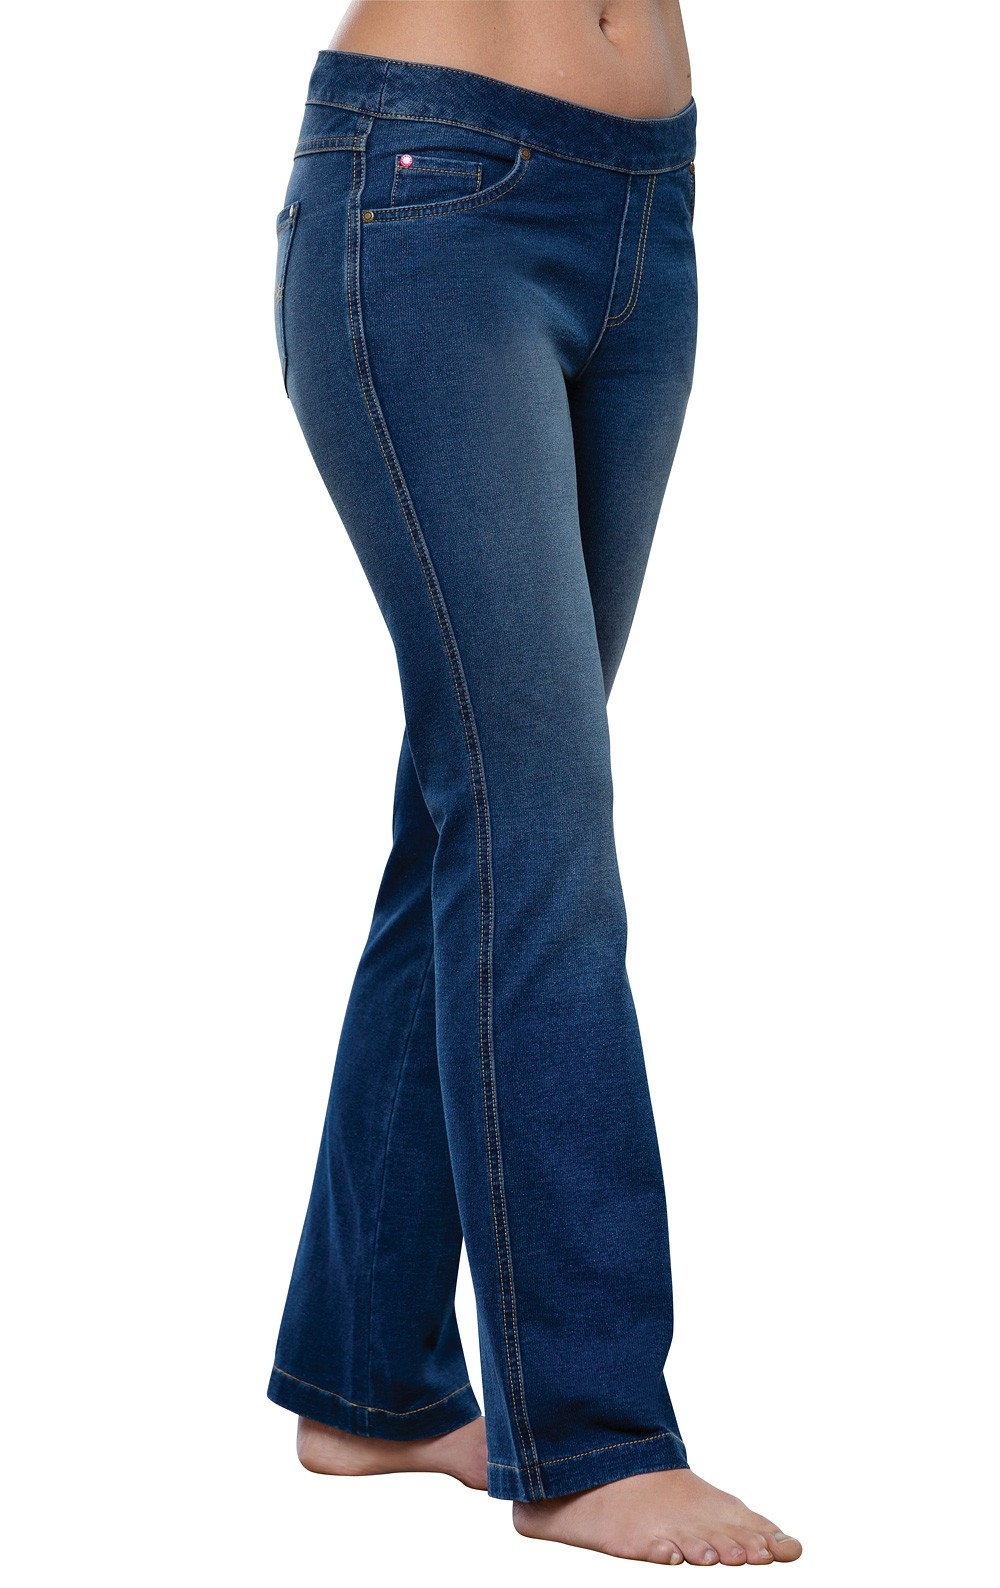 Find great deals on eBay for pajama jeans. Shop with confidence.